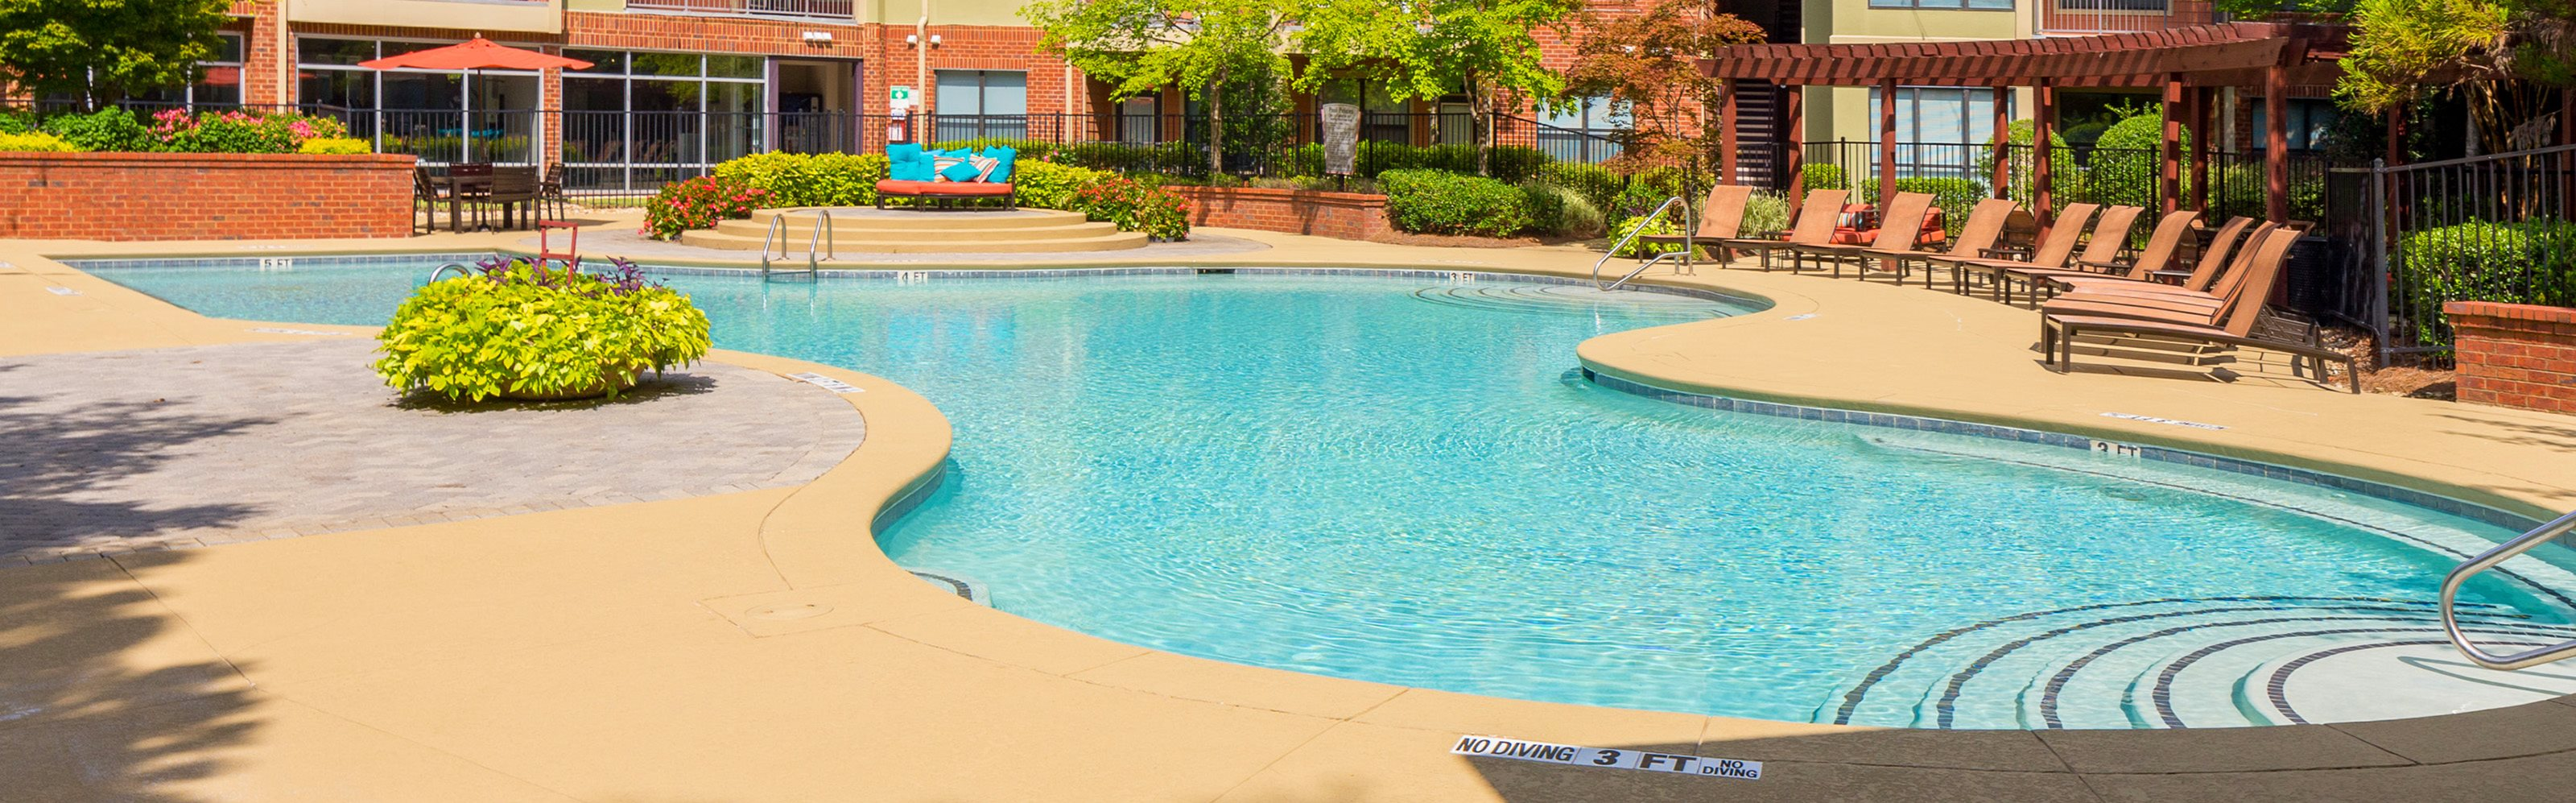 Perimeter Gardens at Georgetown - Pool with sundeck